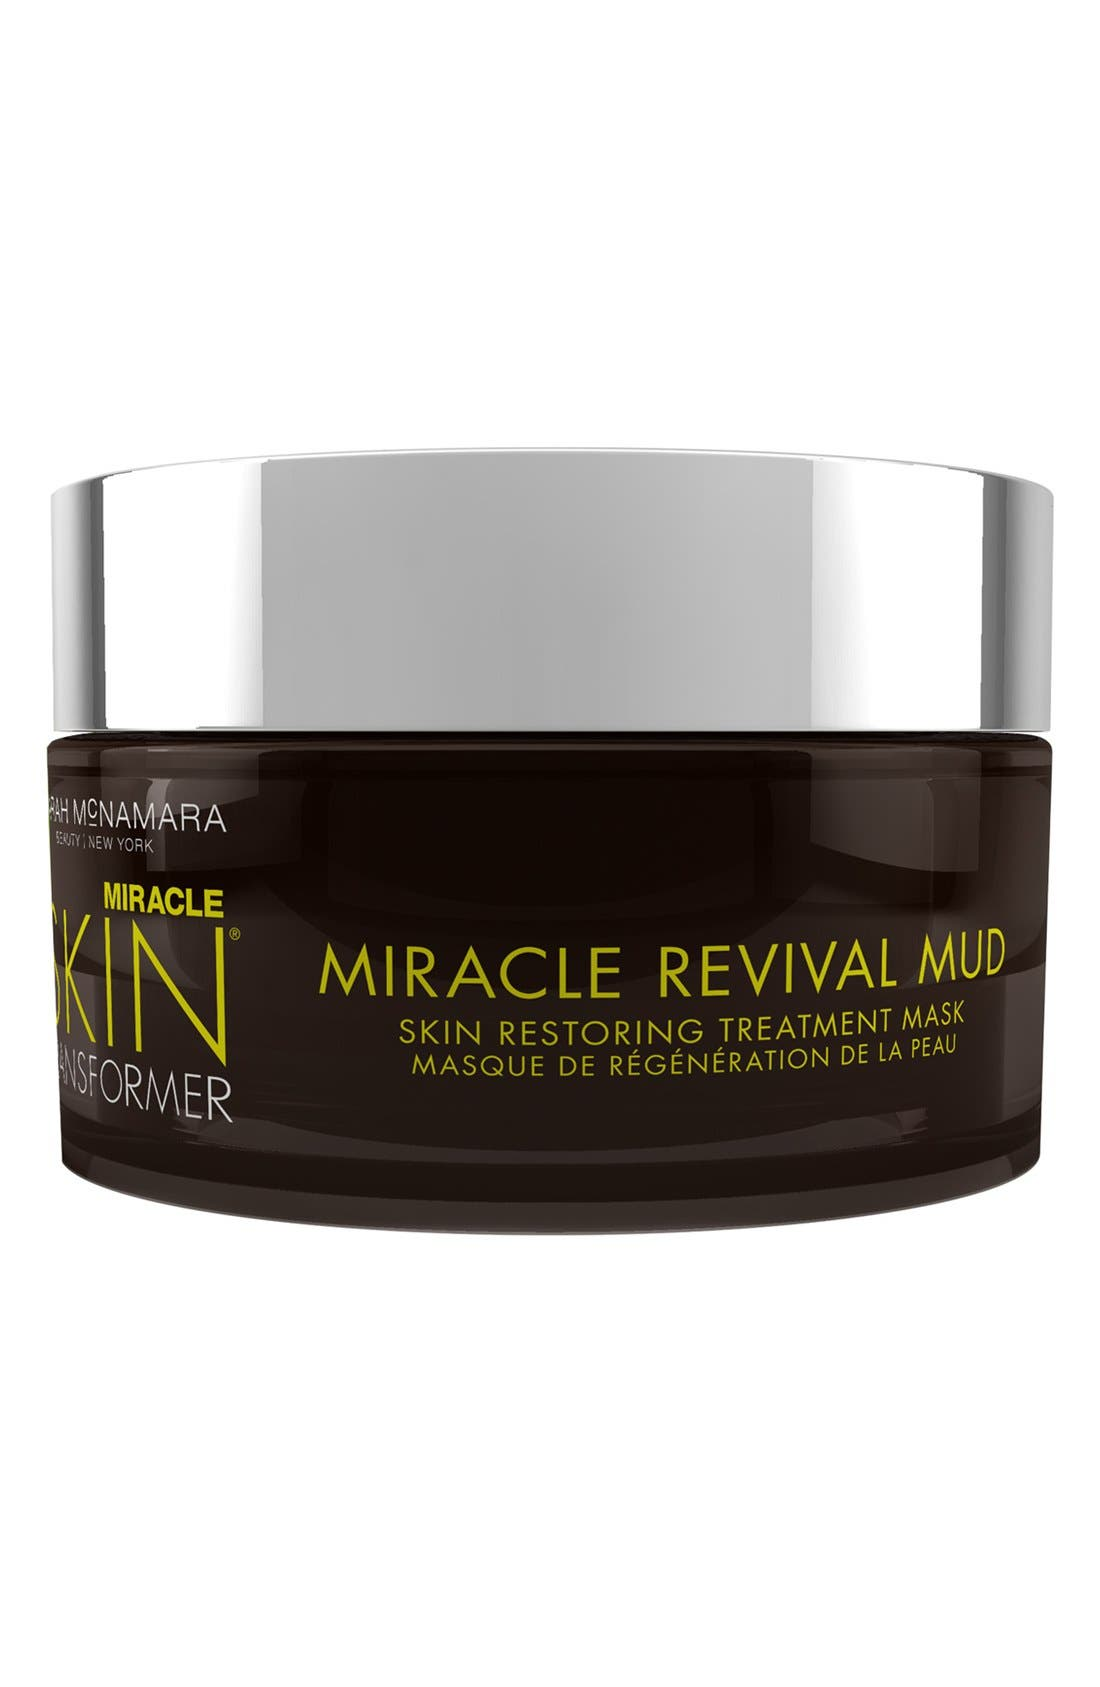 Miracle Skin® Transformer 'Miracle Revival Mud' Skin Restoring Treatment Mask